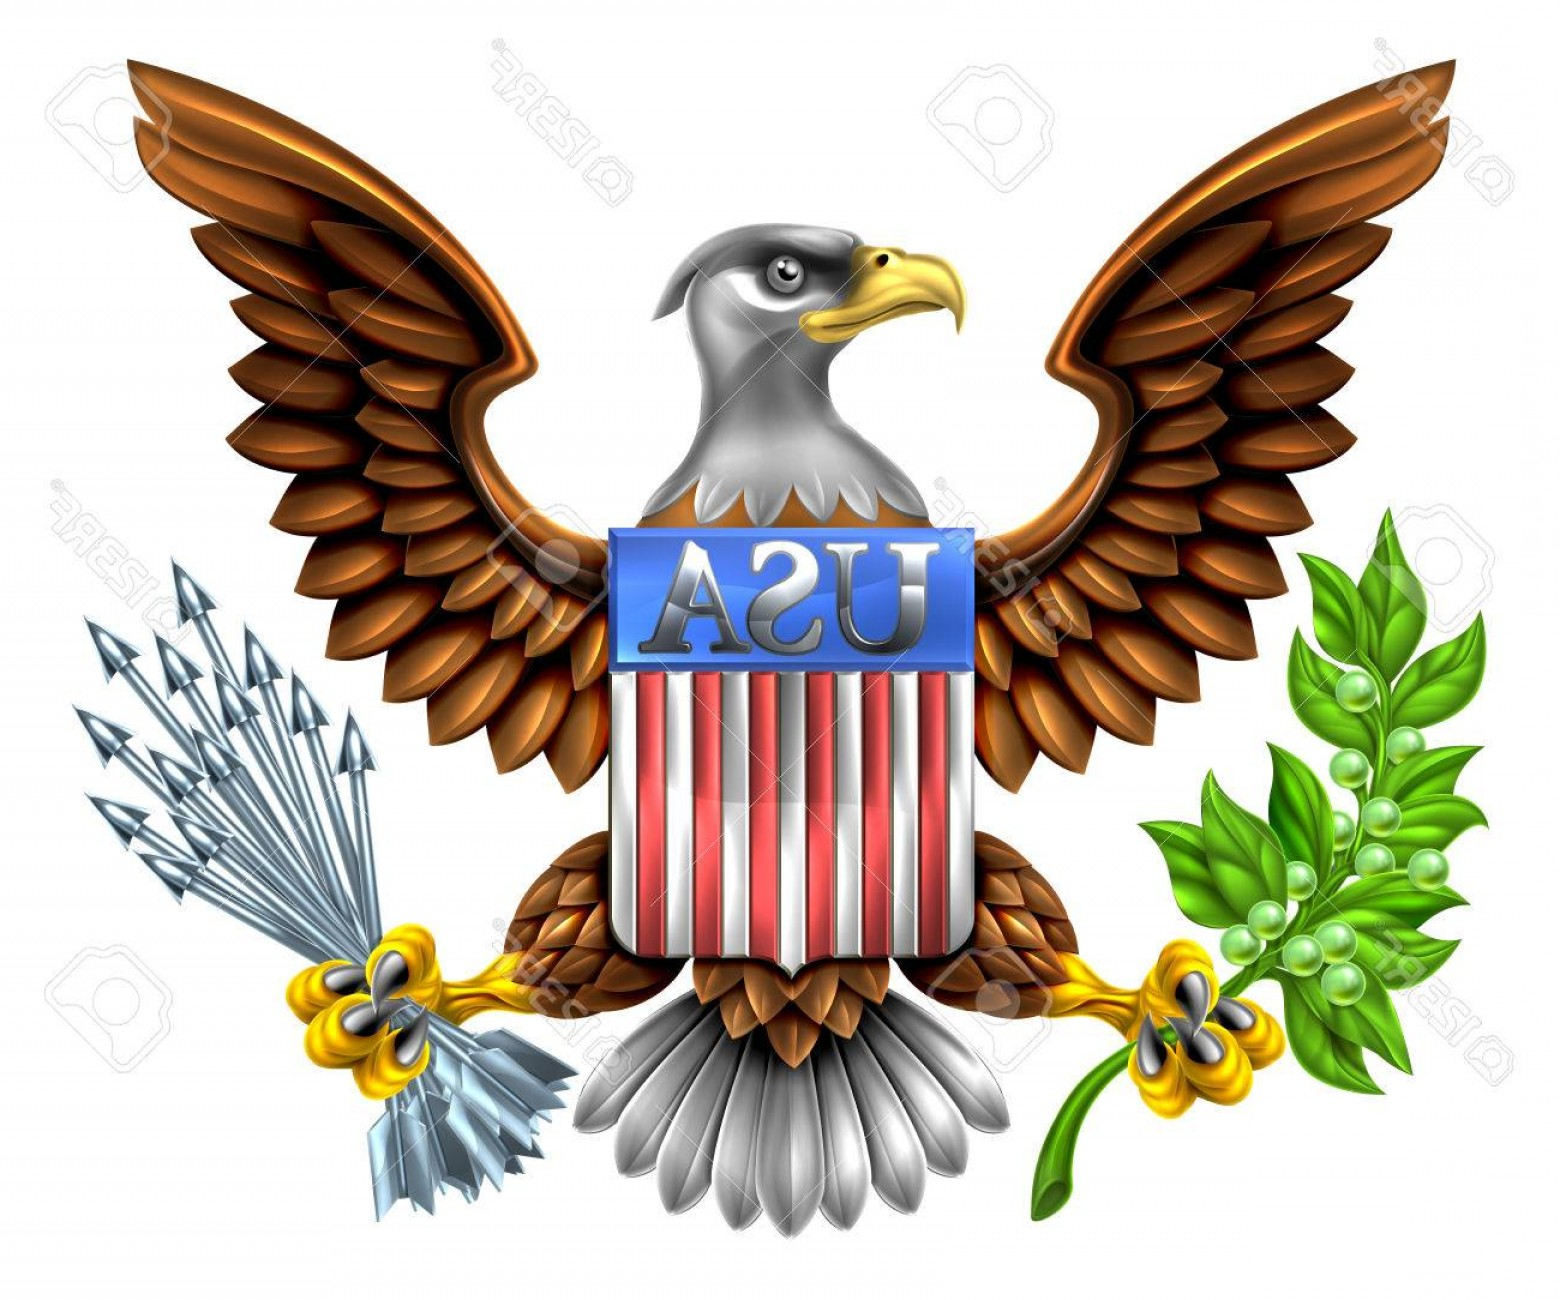 1560x1300 Photostock Vector American Eagle Design With Bald Eagle Like That